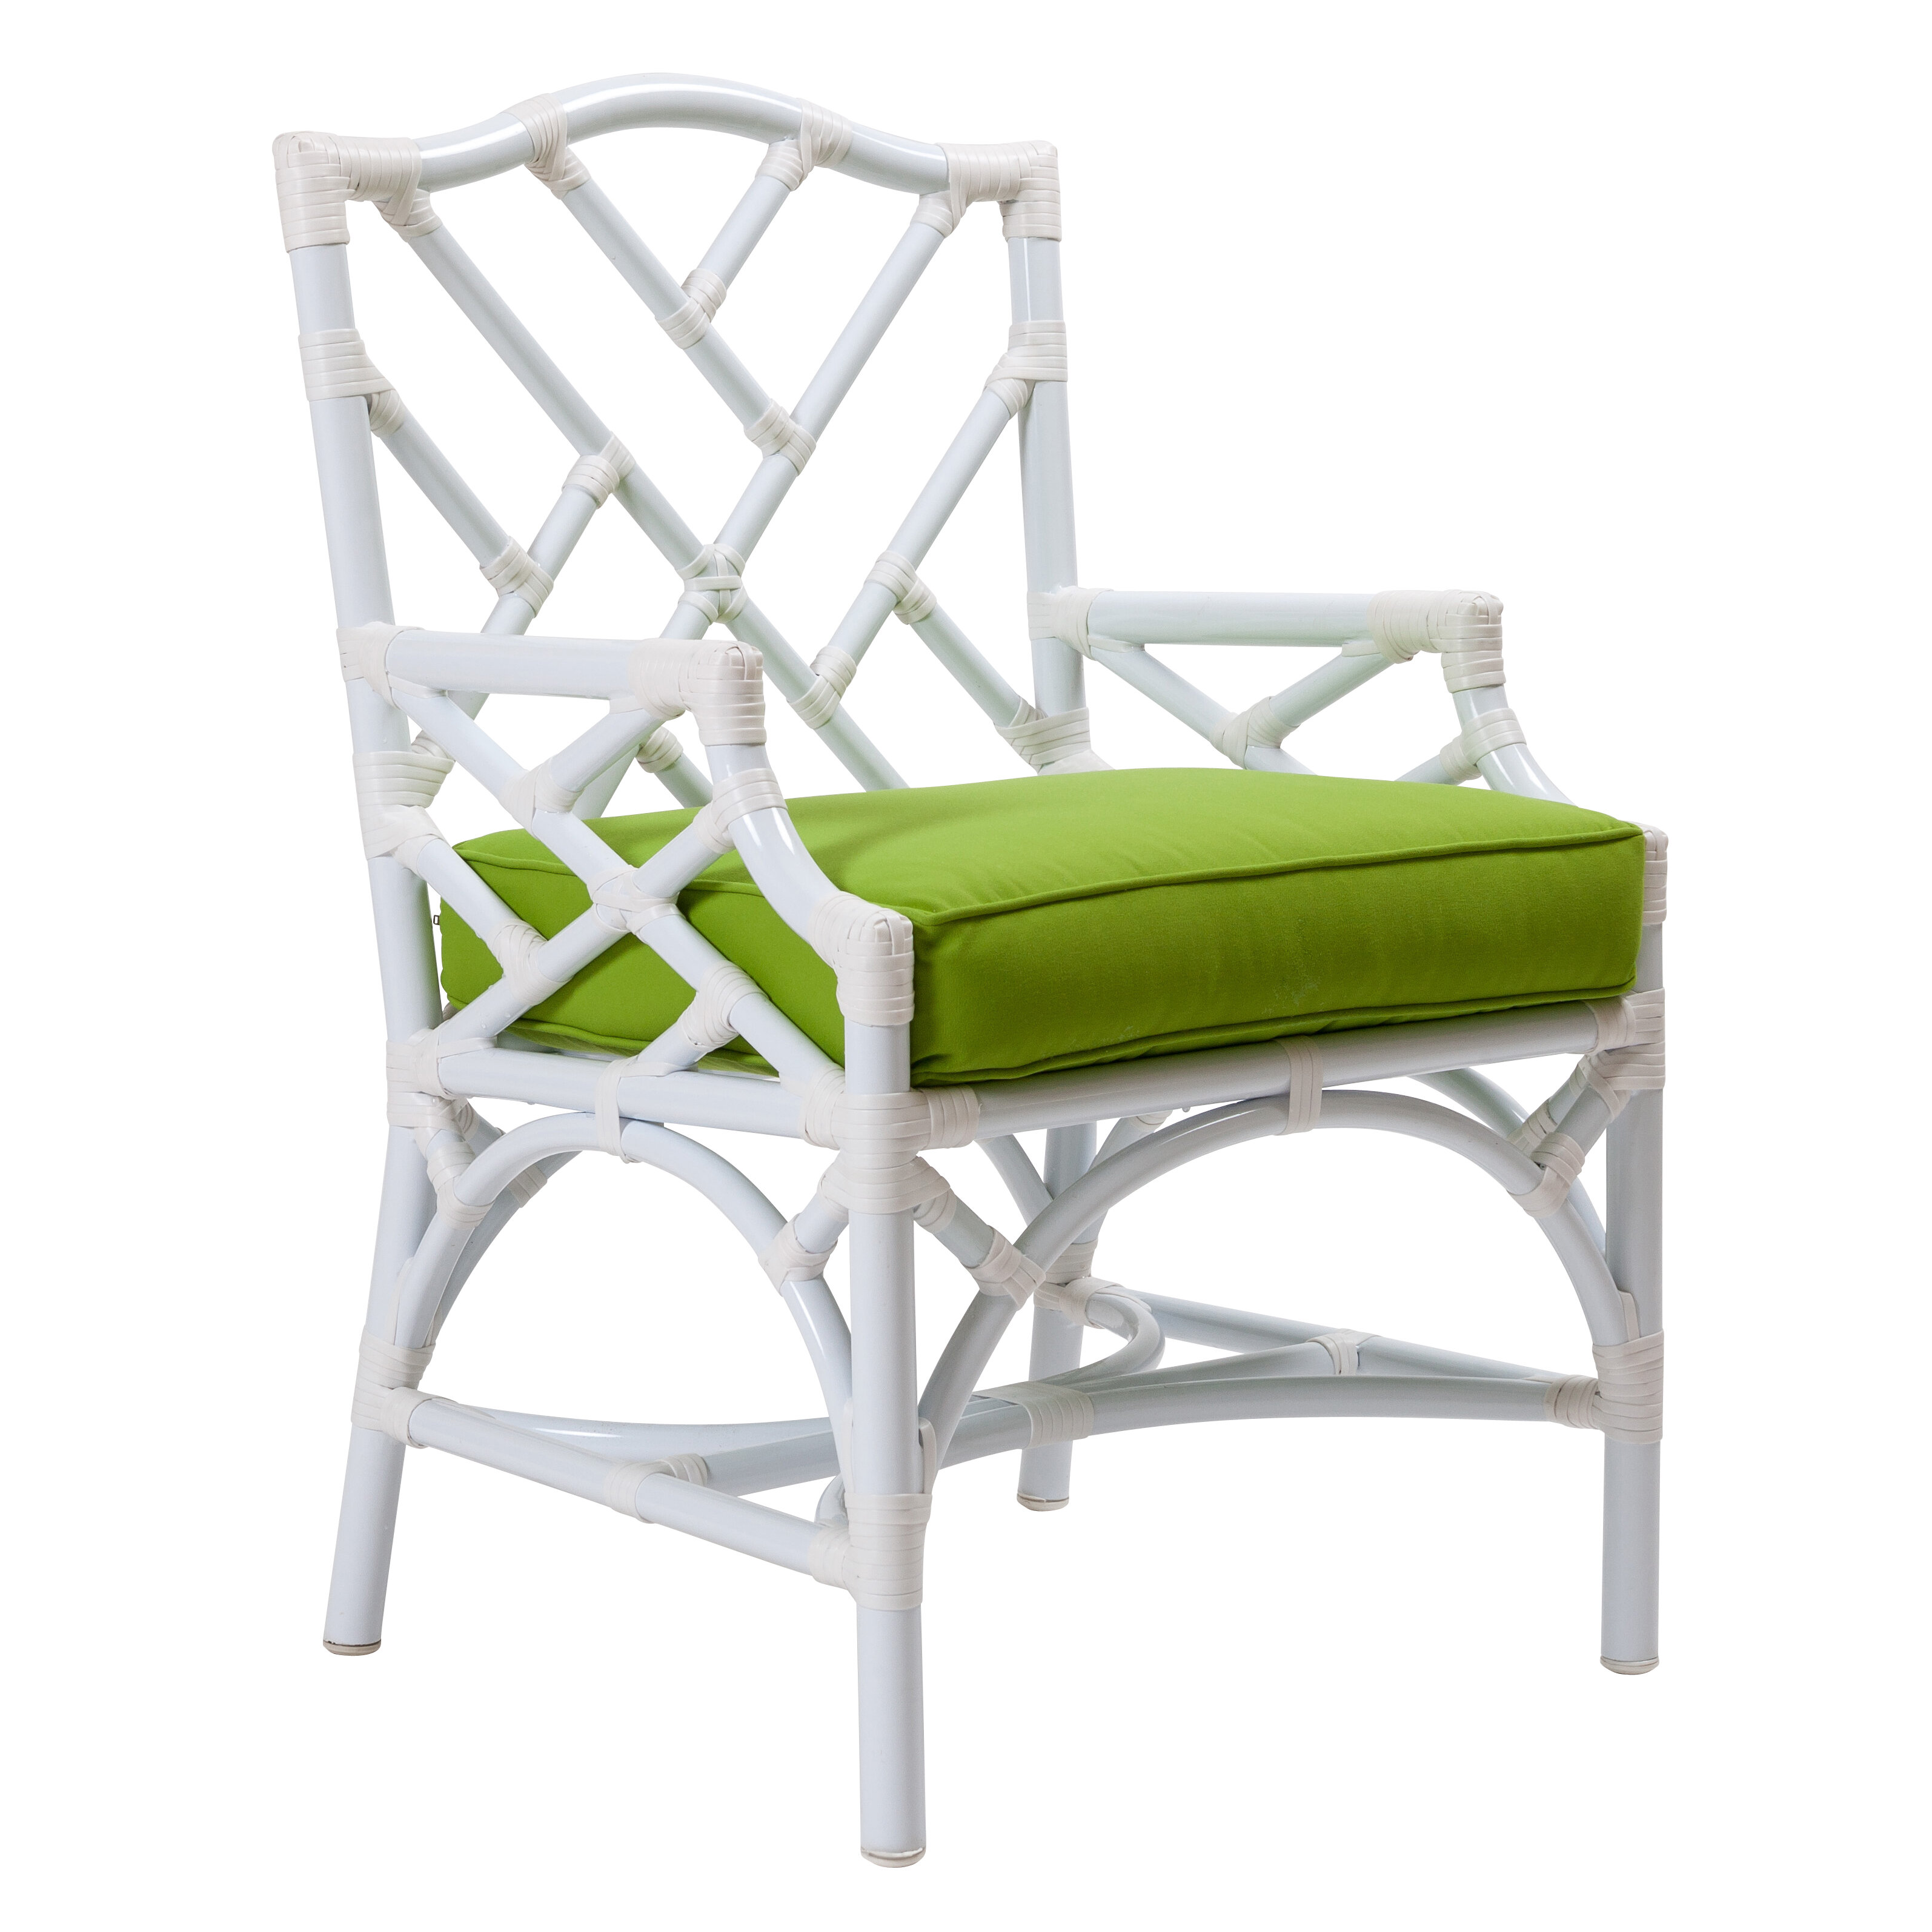 David Francis Furniture Chippendale Patio Dining Chair With Cushion Wayfair